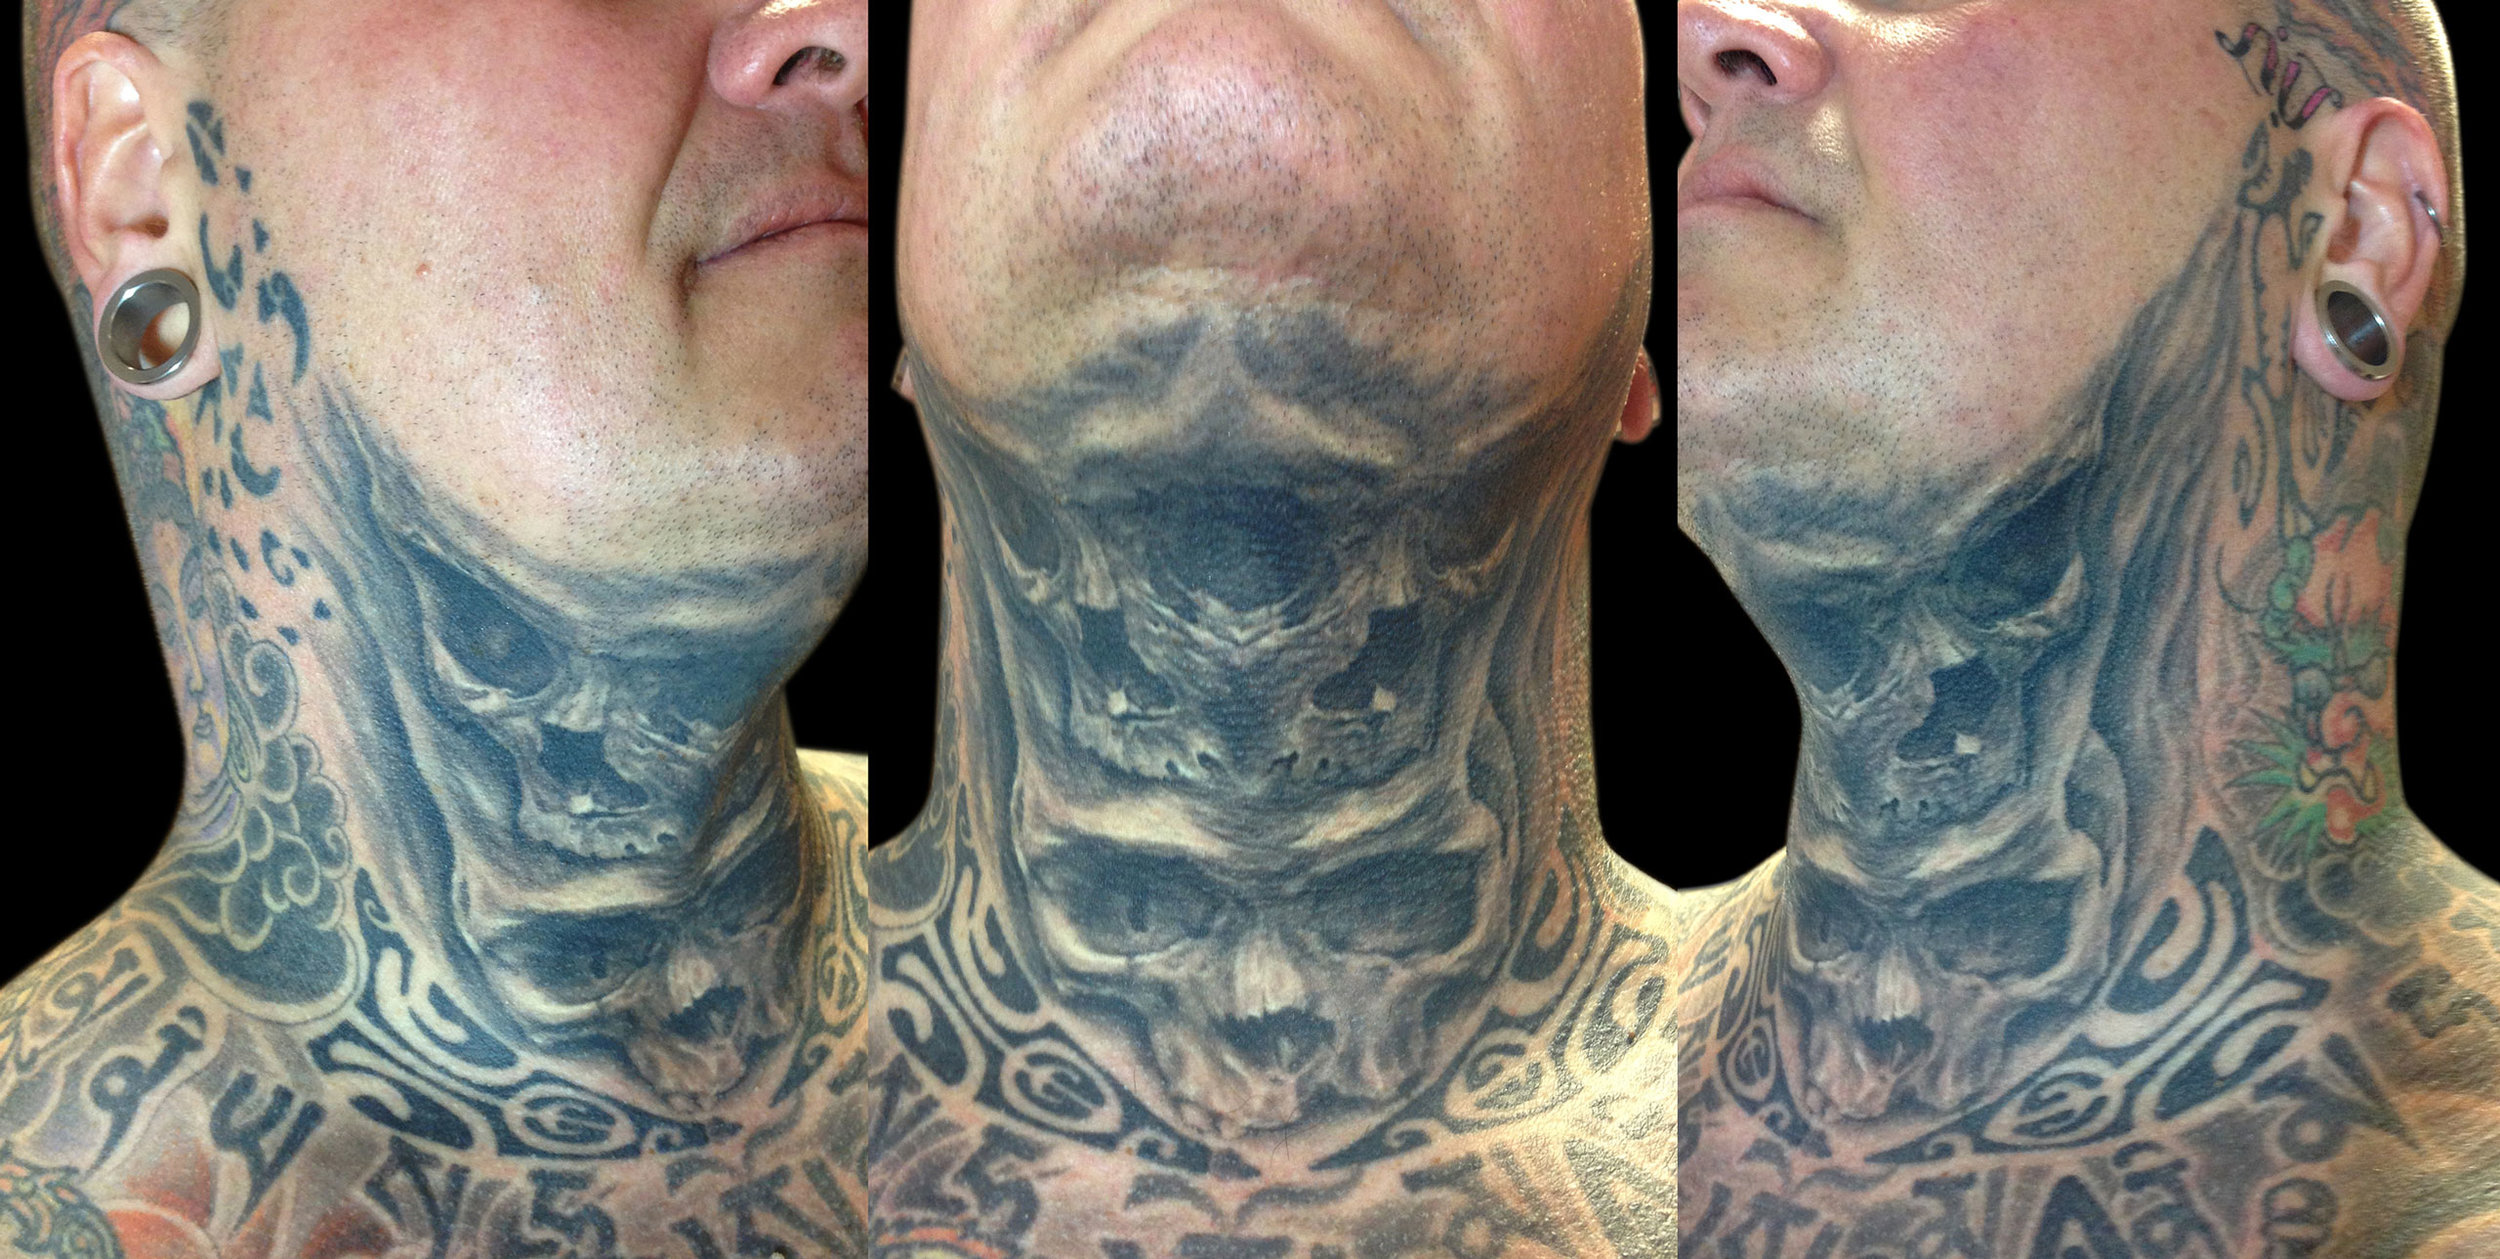 Black and Grey Mirror Throat Skull Tattoo, (healed)